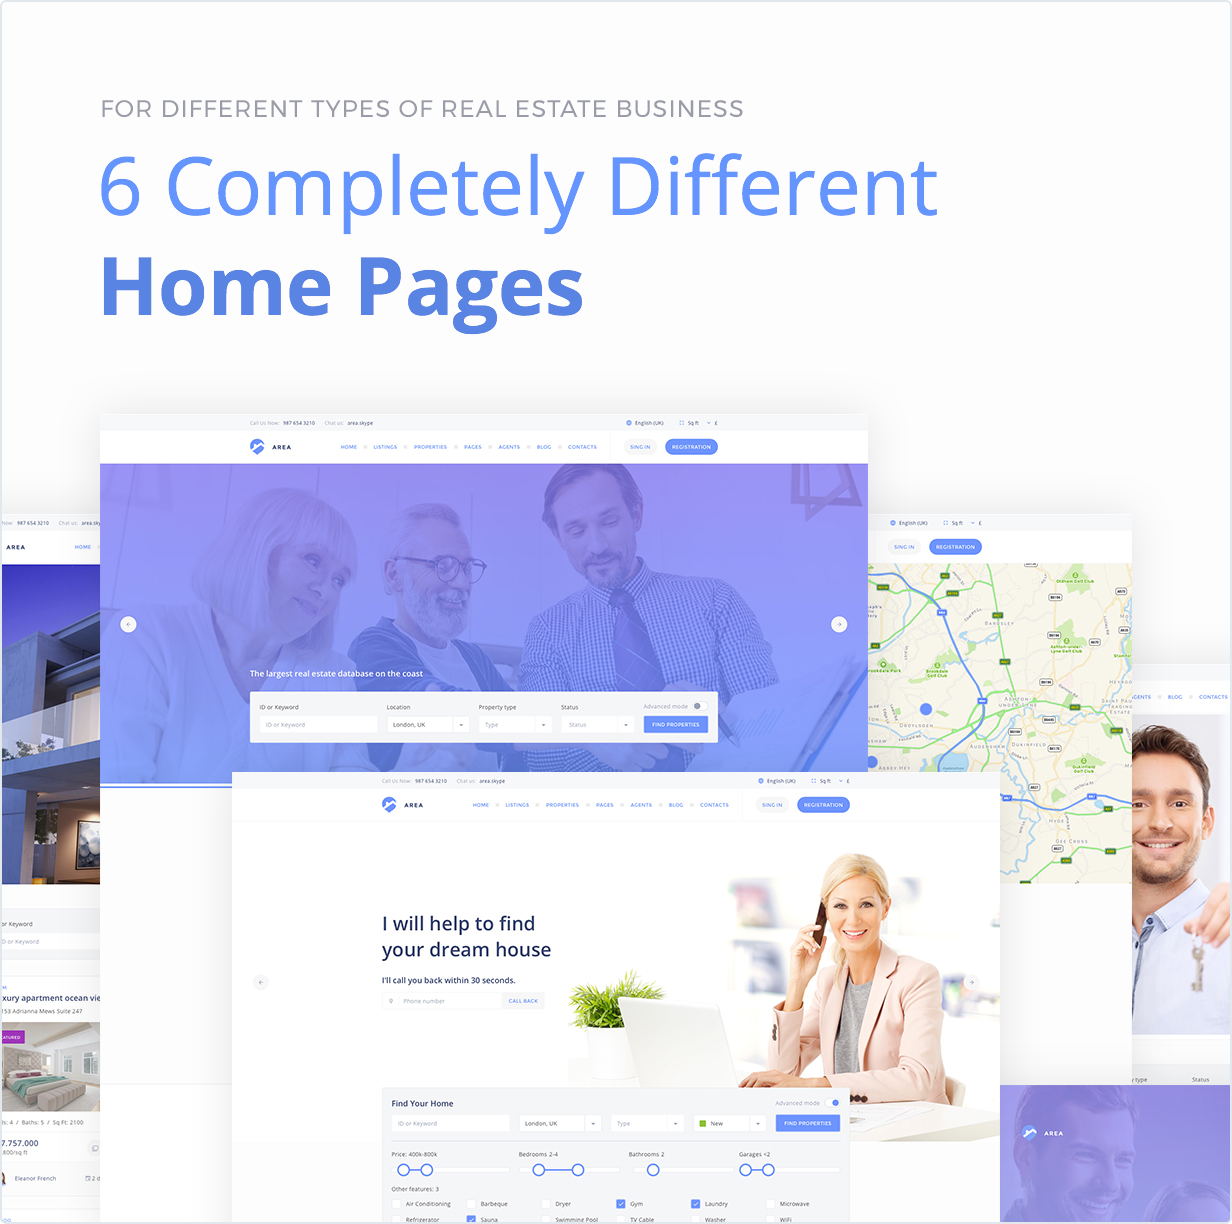 6 Completely Different Home Pages